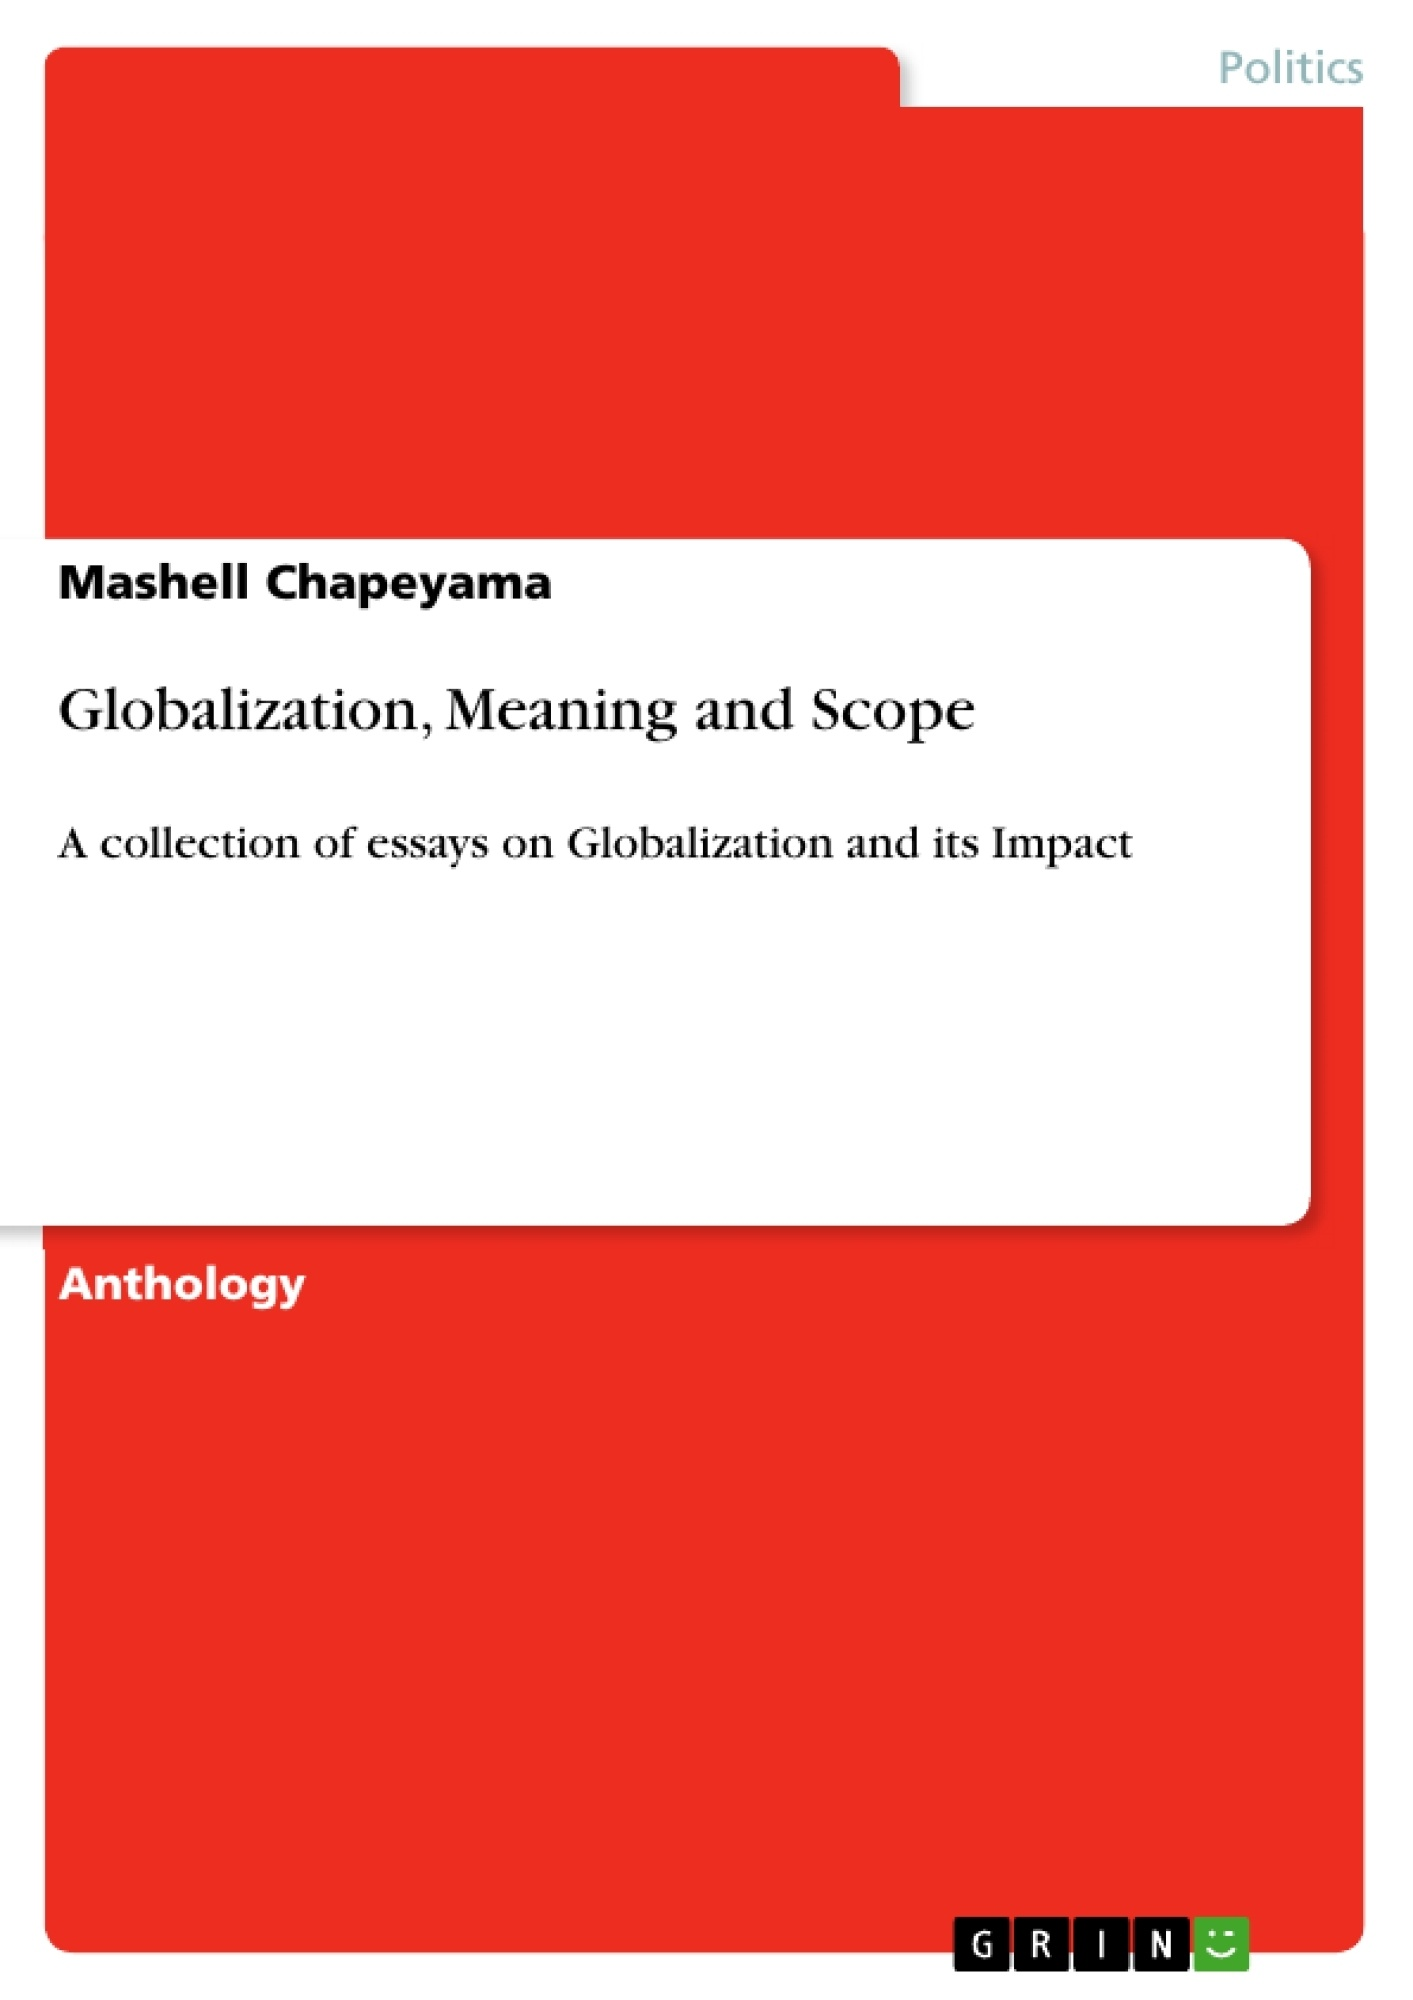 Globalization Meaning And Scope  Publish Your Masters Thesis  Upload Your Own Papers Earn Money And Win An Iphone X